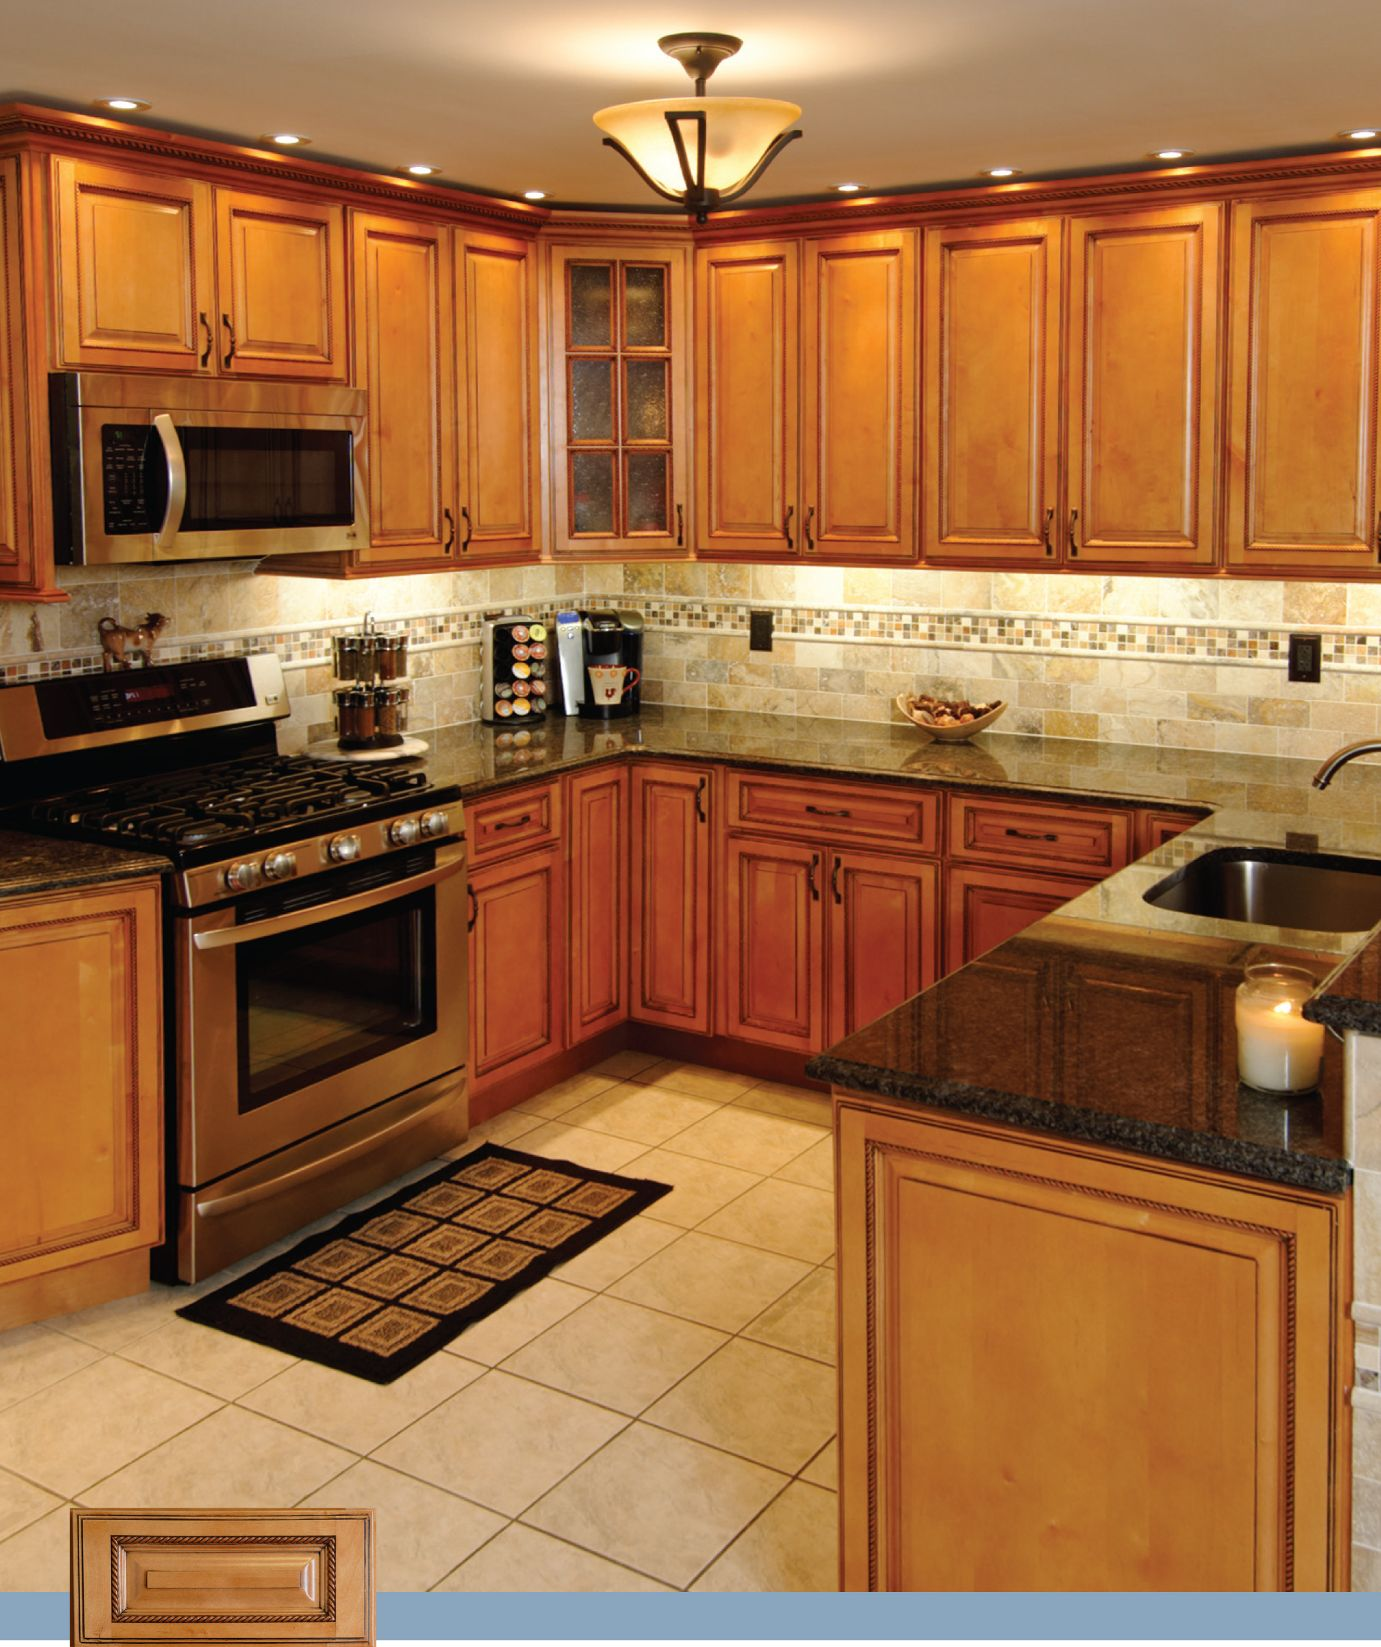 Remarkable Kitchen Colors with Light Maple Cabinets 1381 x 1647 · 296 kB · jpeg